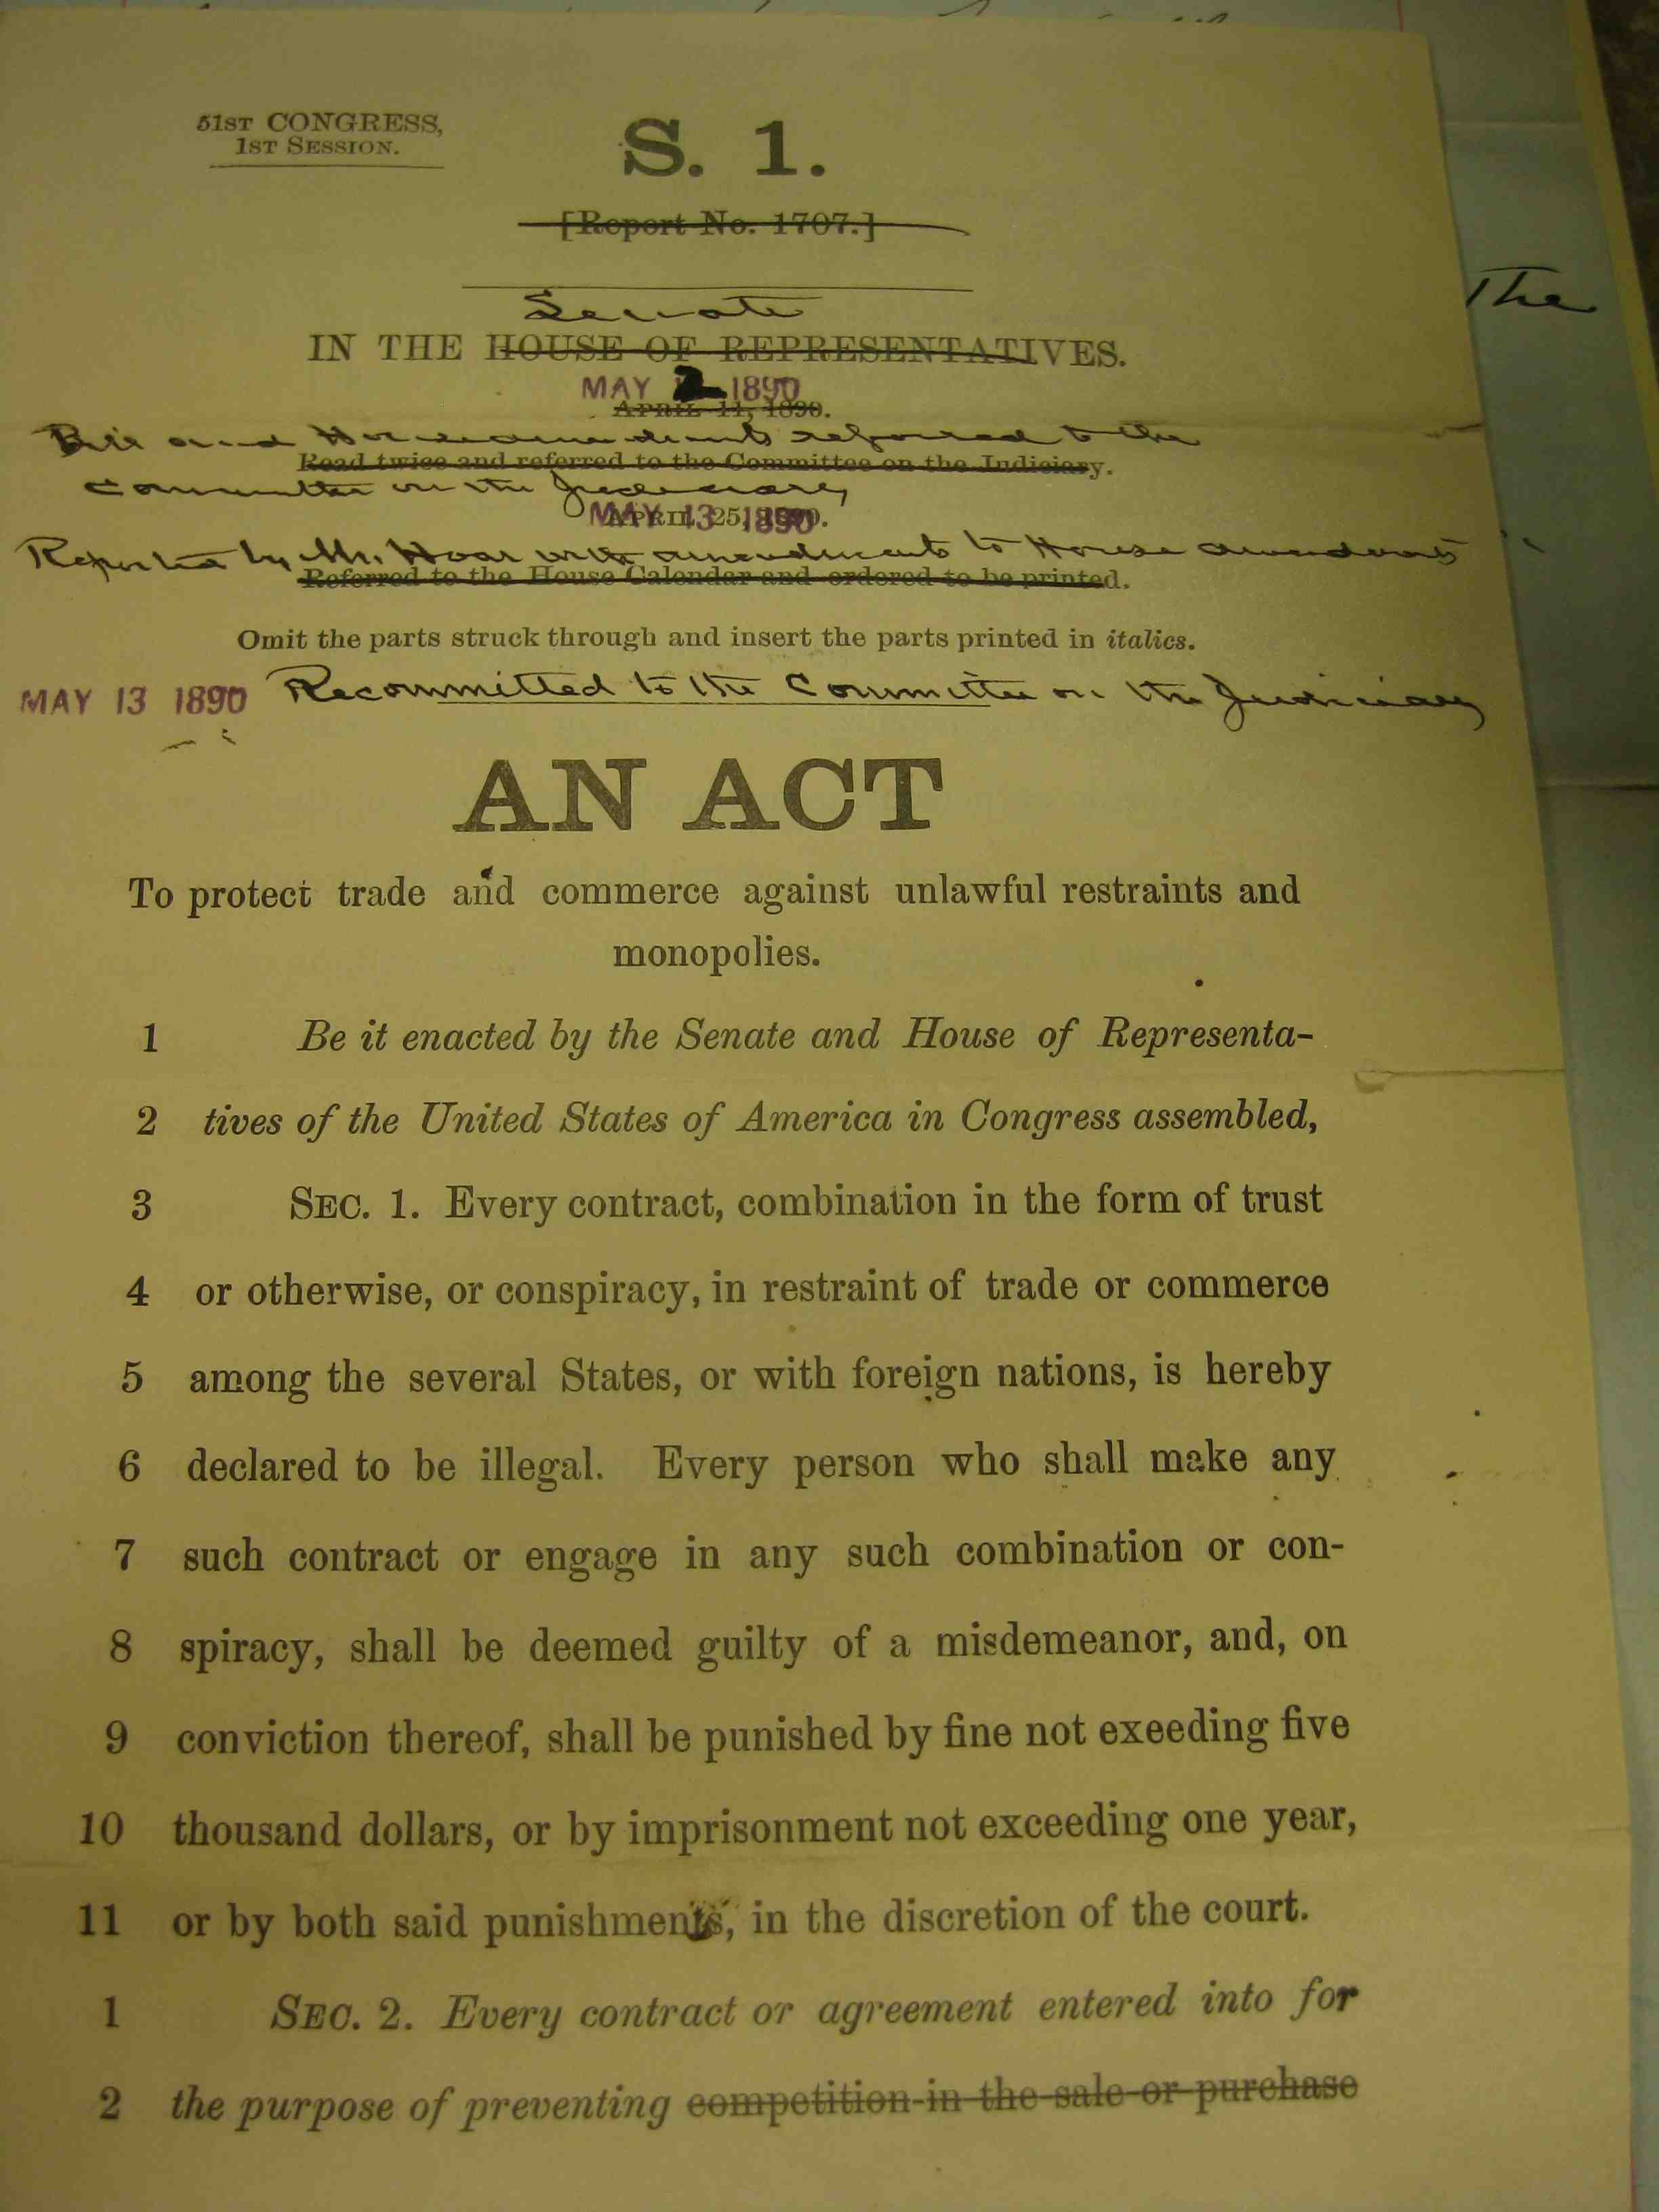 an analysis of sherman anti trust act of 1890 Find great deals on ebay for 1890-sherman-antitrust-act shop with confidence.